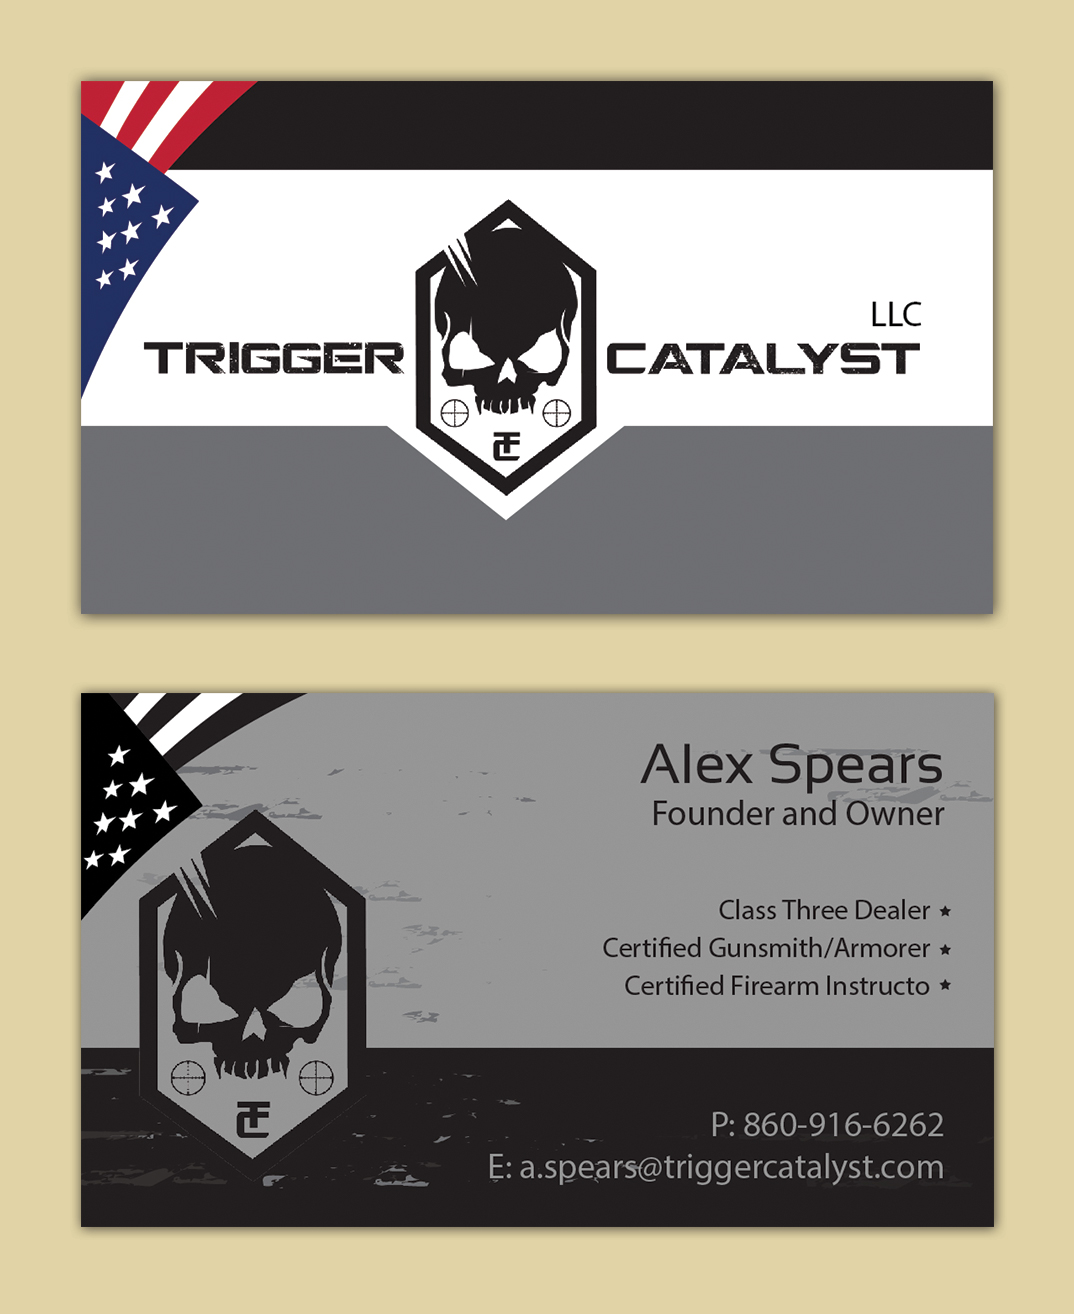 Serious, Professional, Gun Business Card Design for a Company by ...